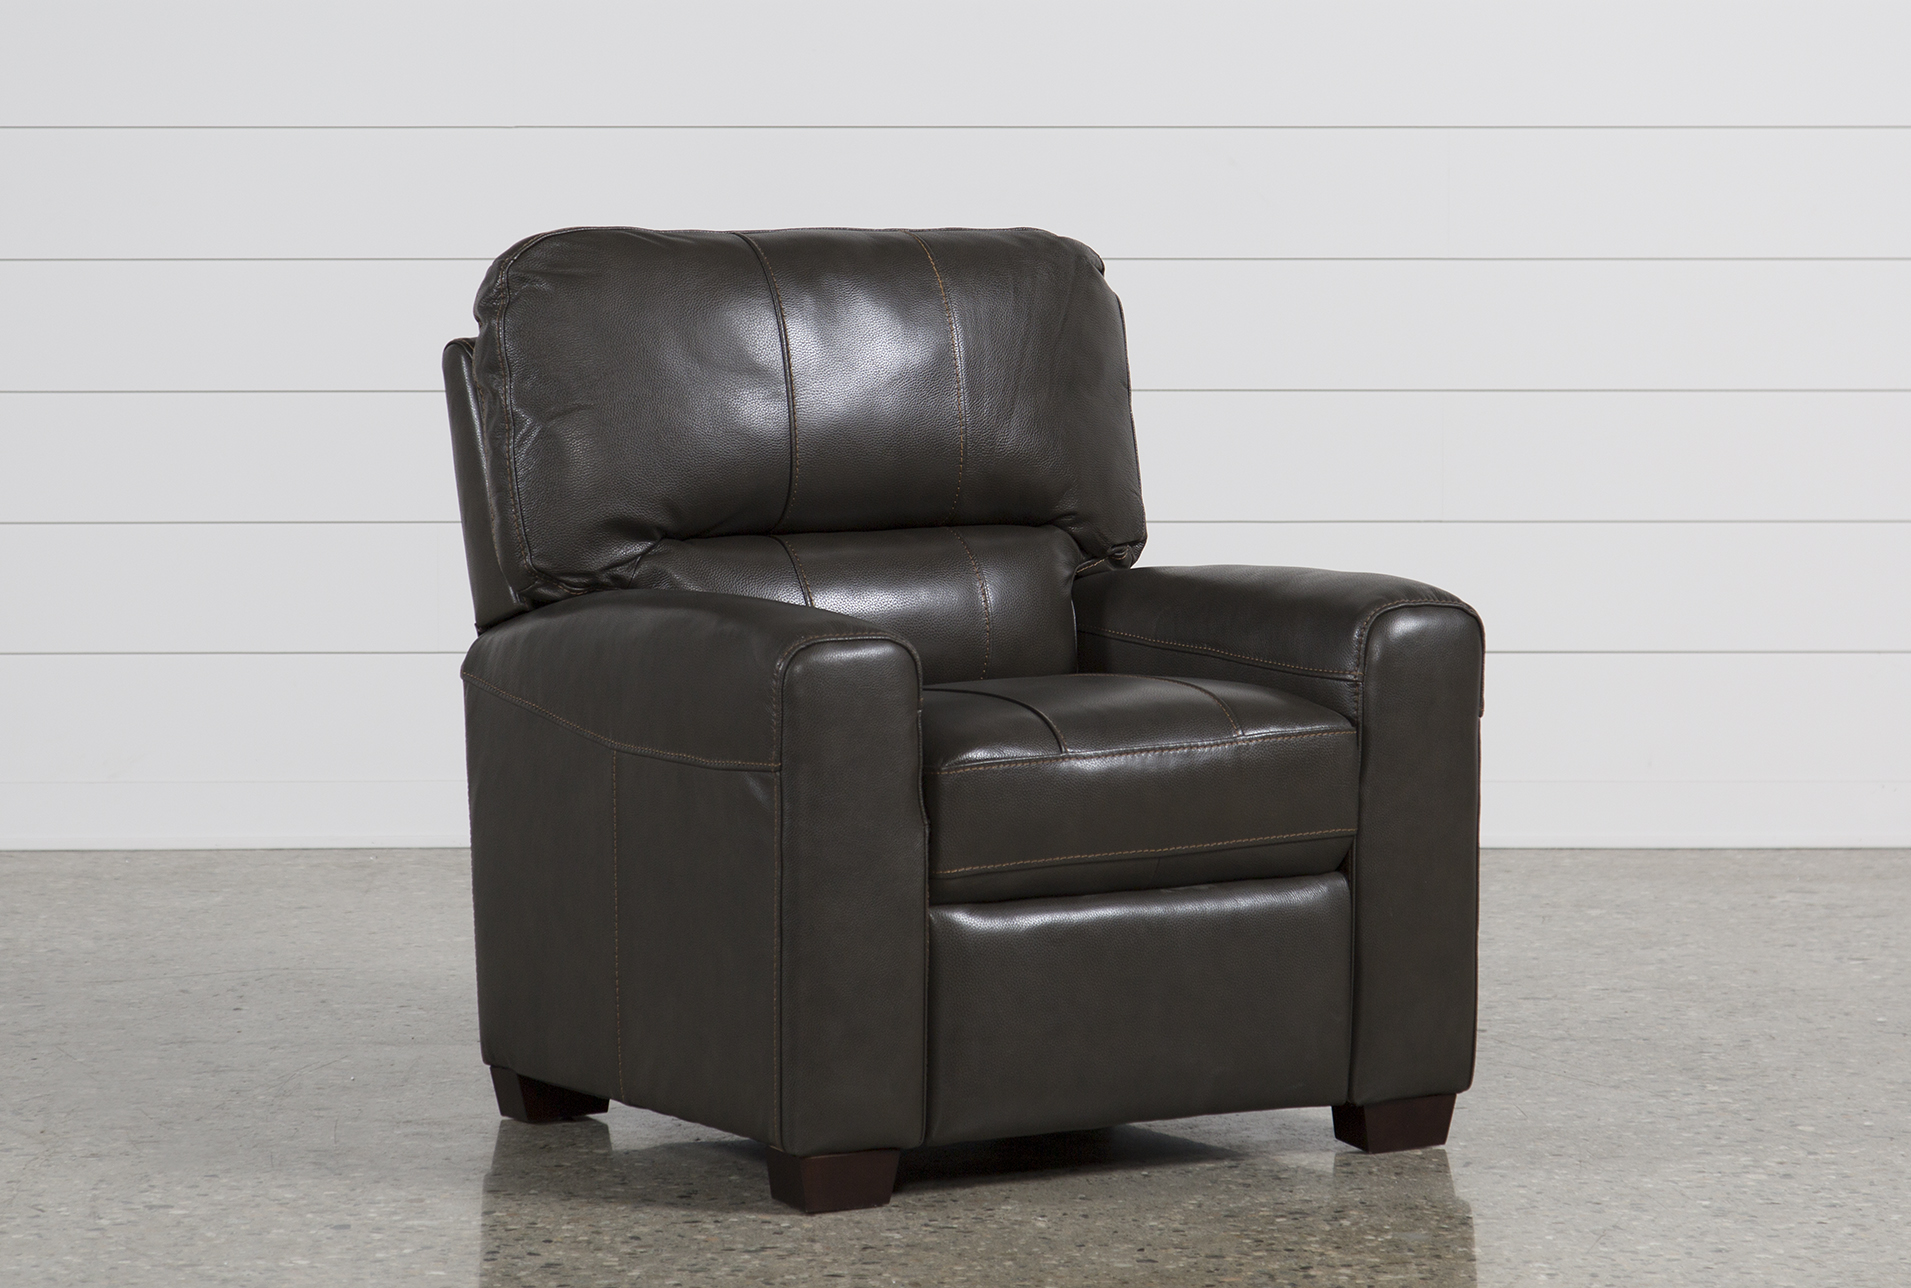 recliner chair leather oversized and a half andrew living spaces